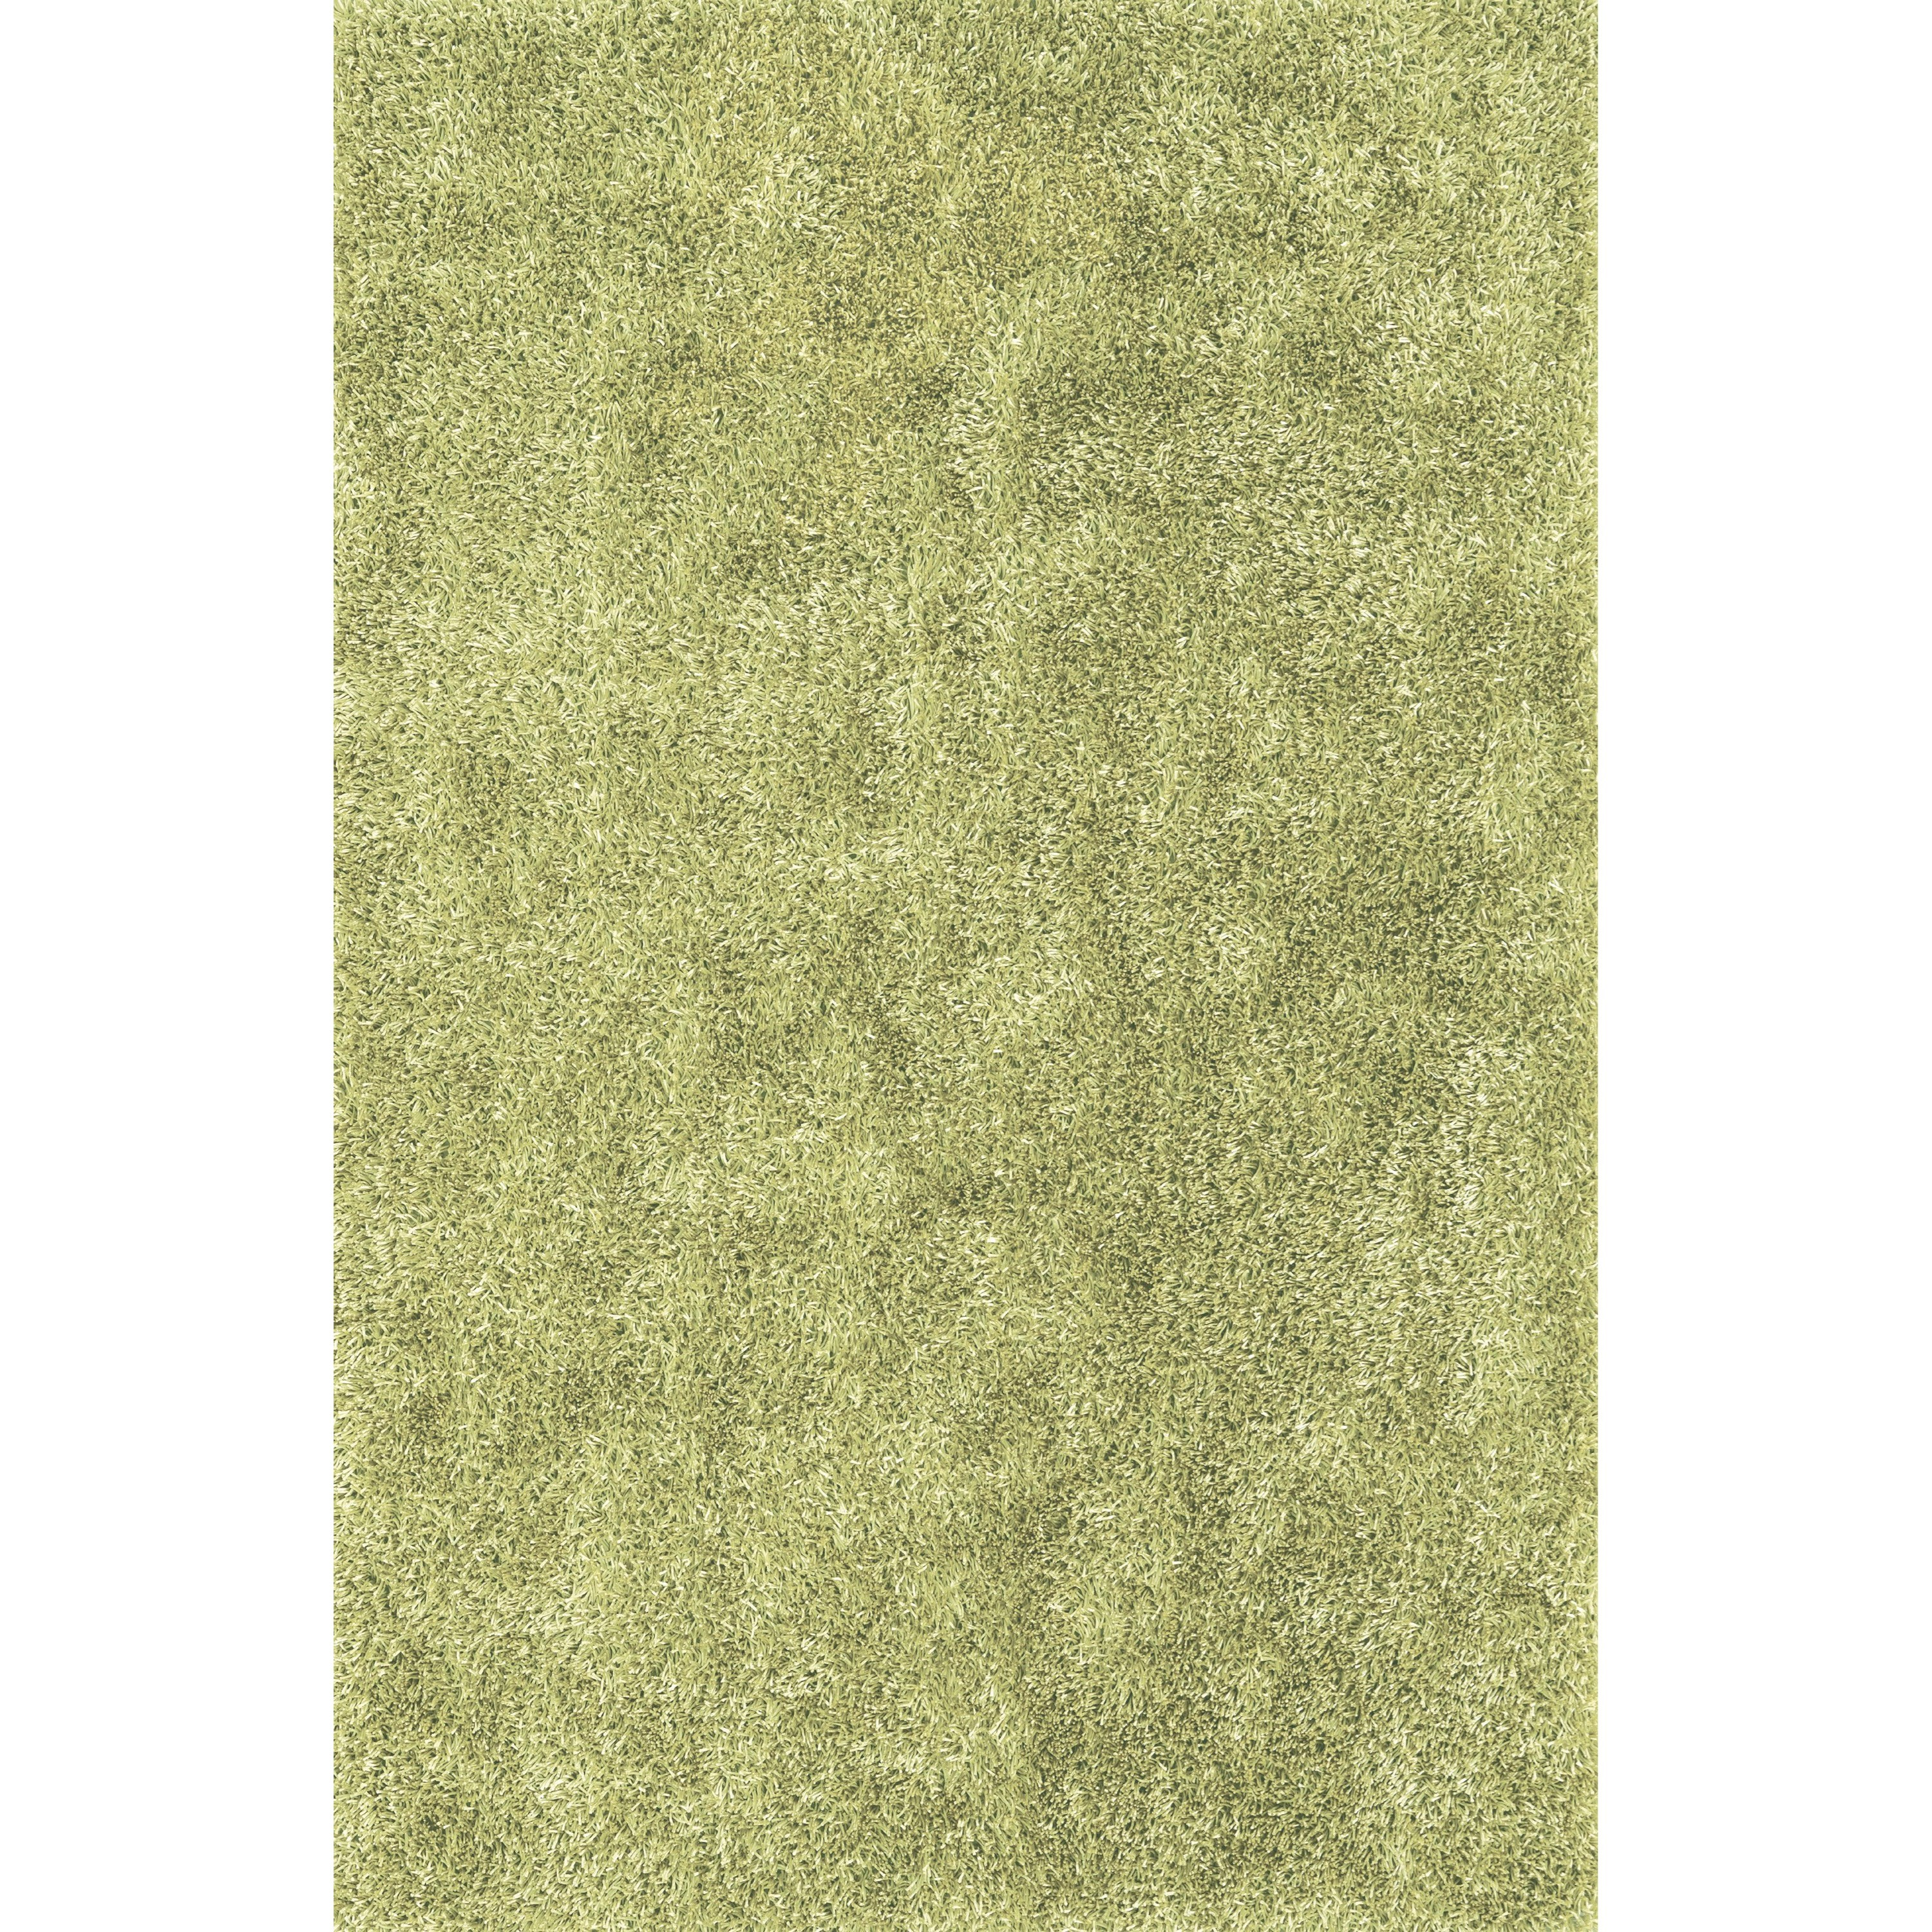 Dalyn Illusions Willow 8'X10' Rug - Item Number: IL69WI8X10